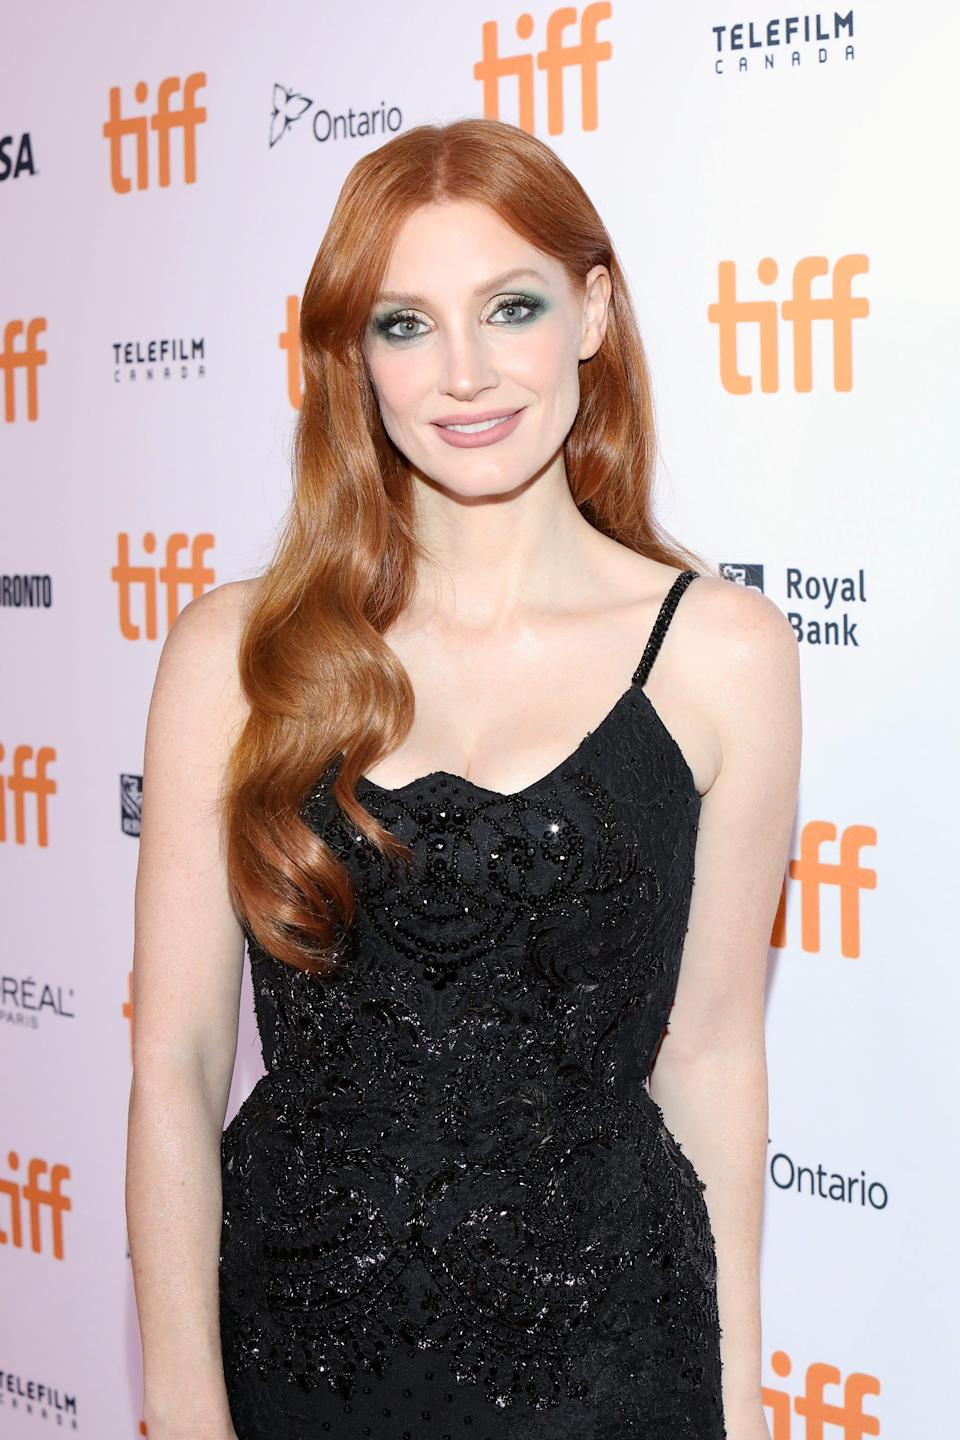 Jessica Chastain on the red carpet at the 2021 Toronto International Film Festival.